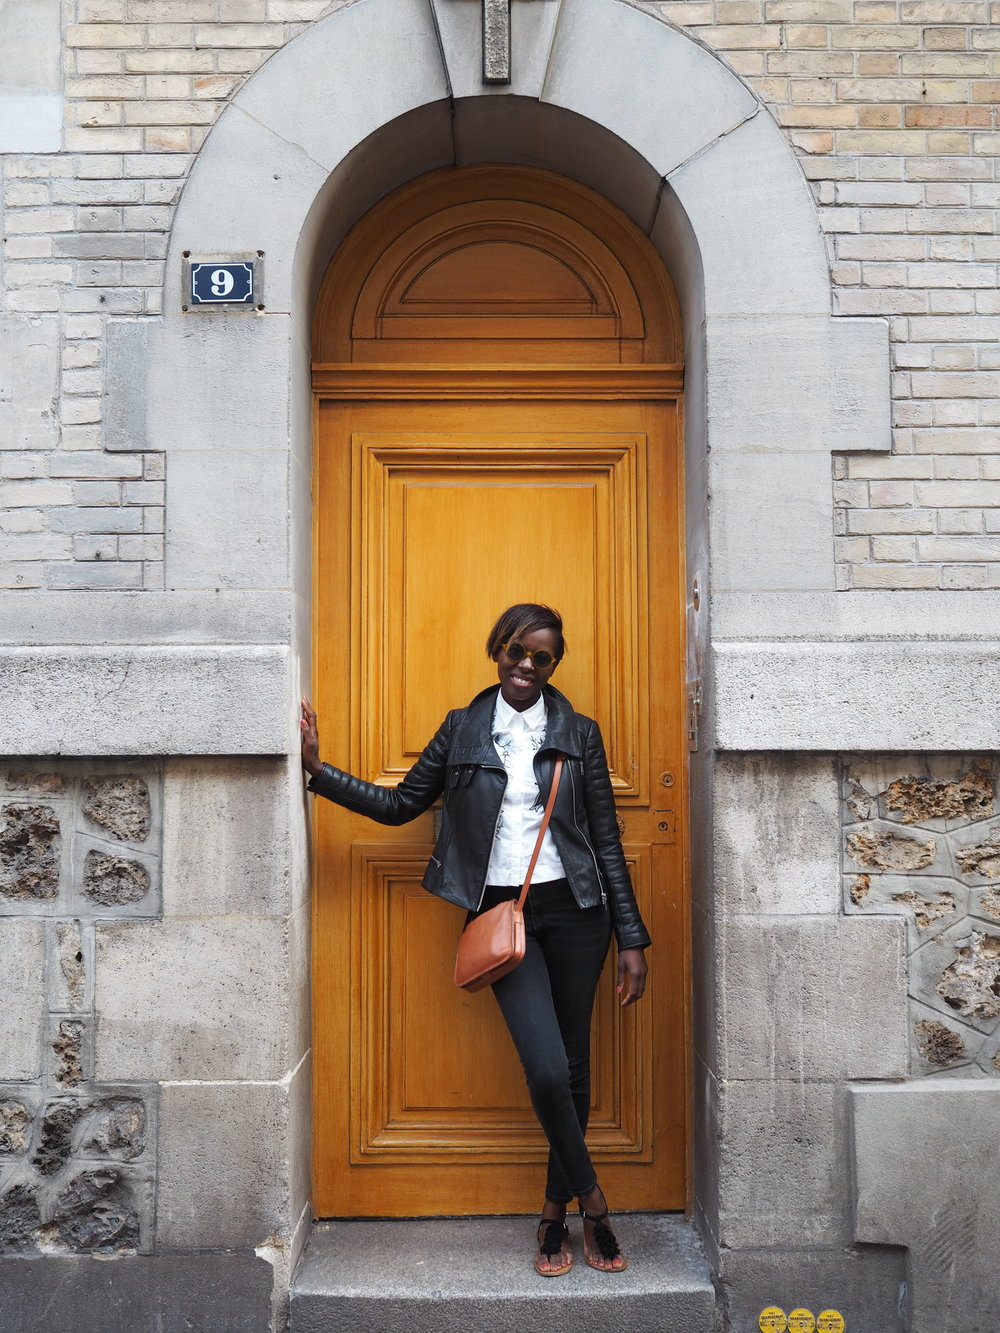 an arched doorway and a door that matches my sunglasses….irresistible!